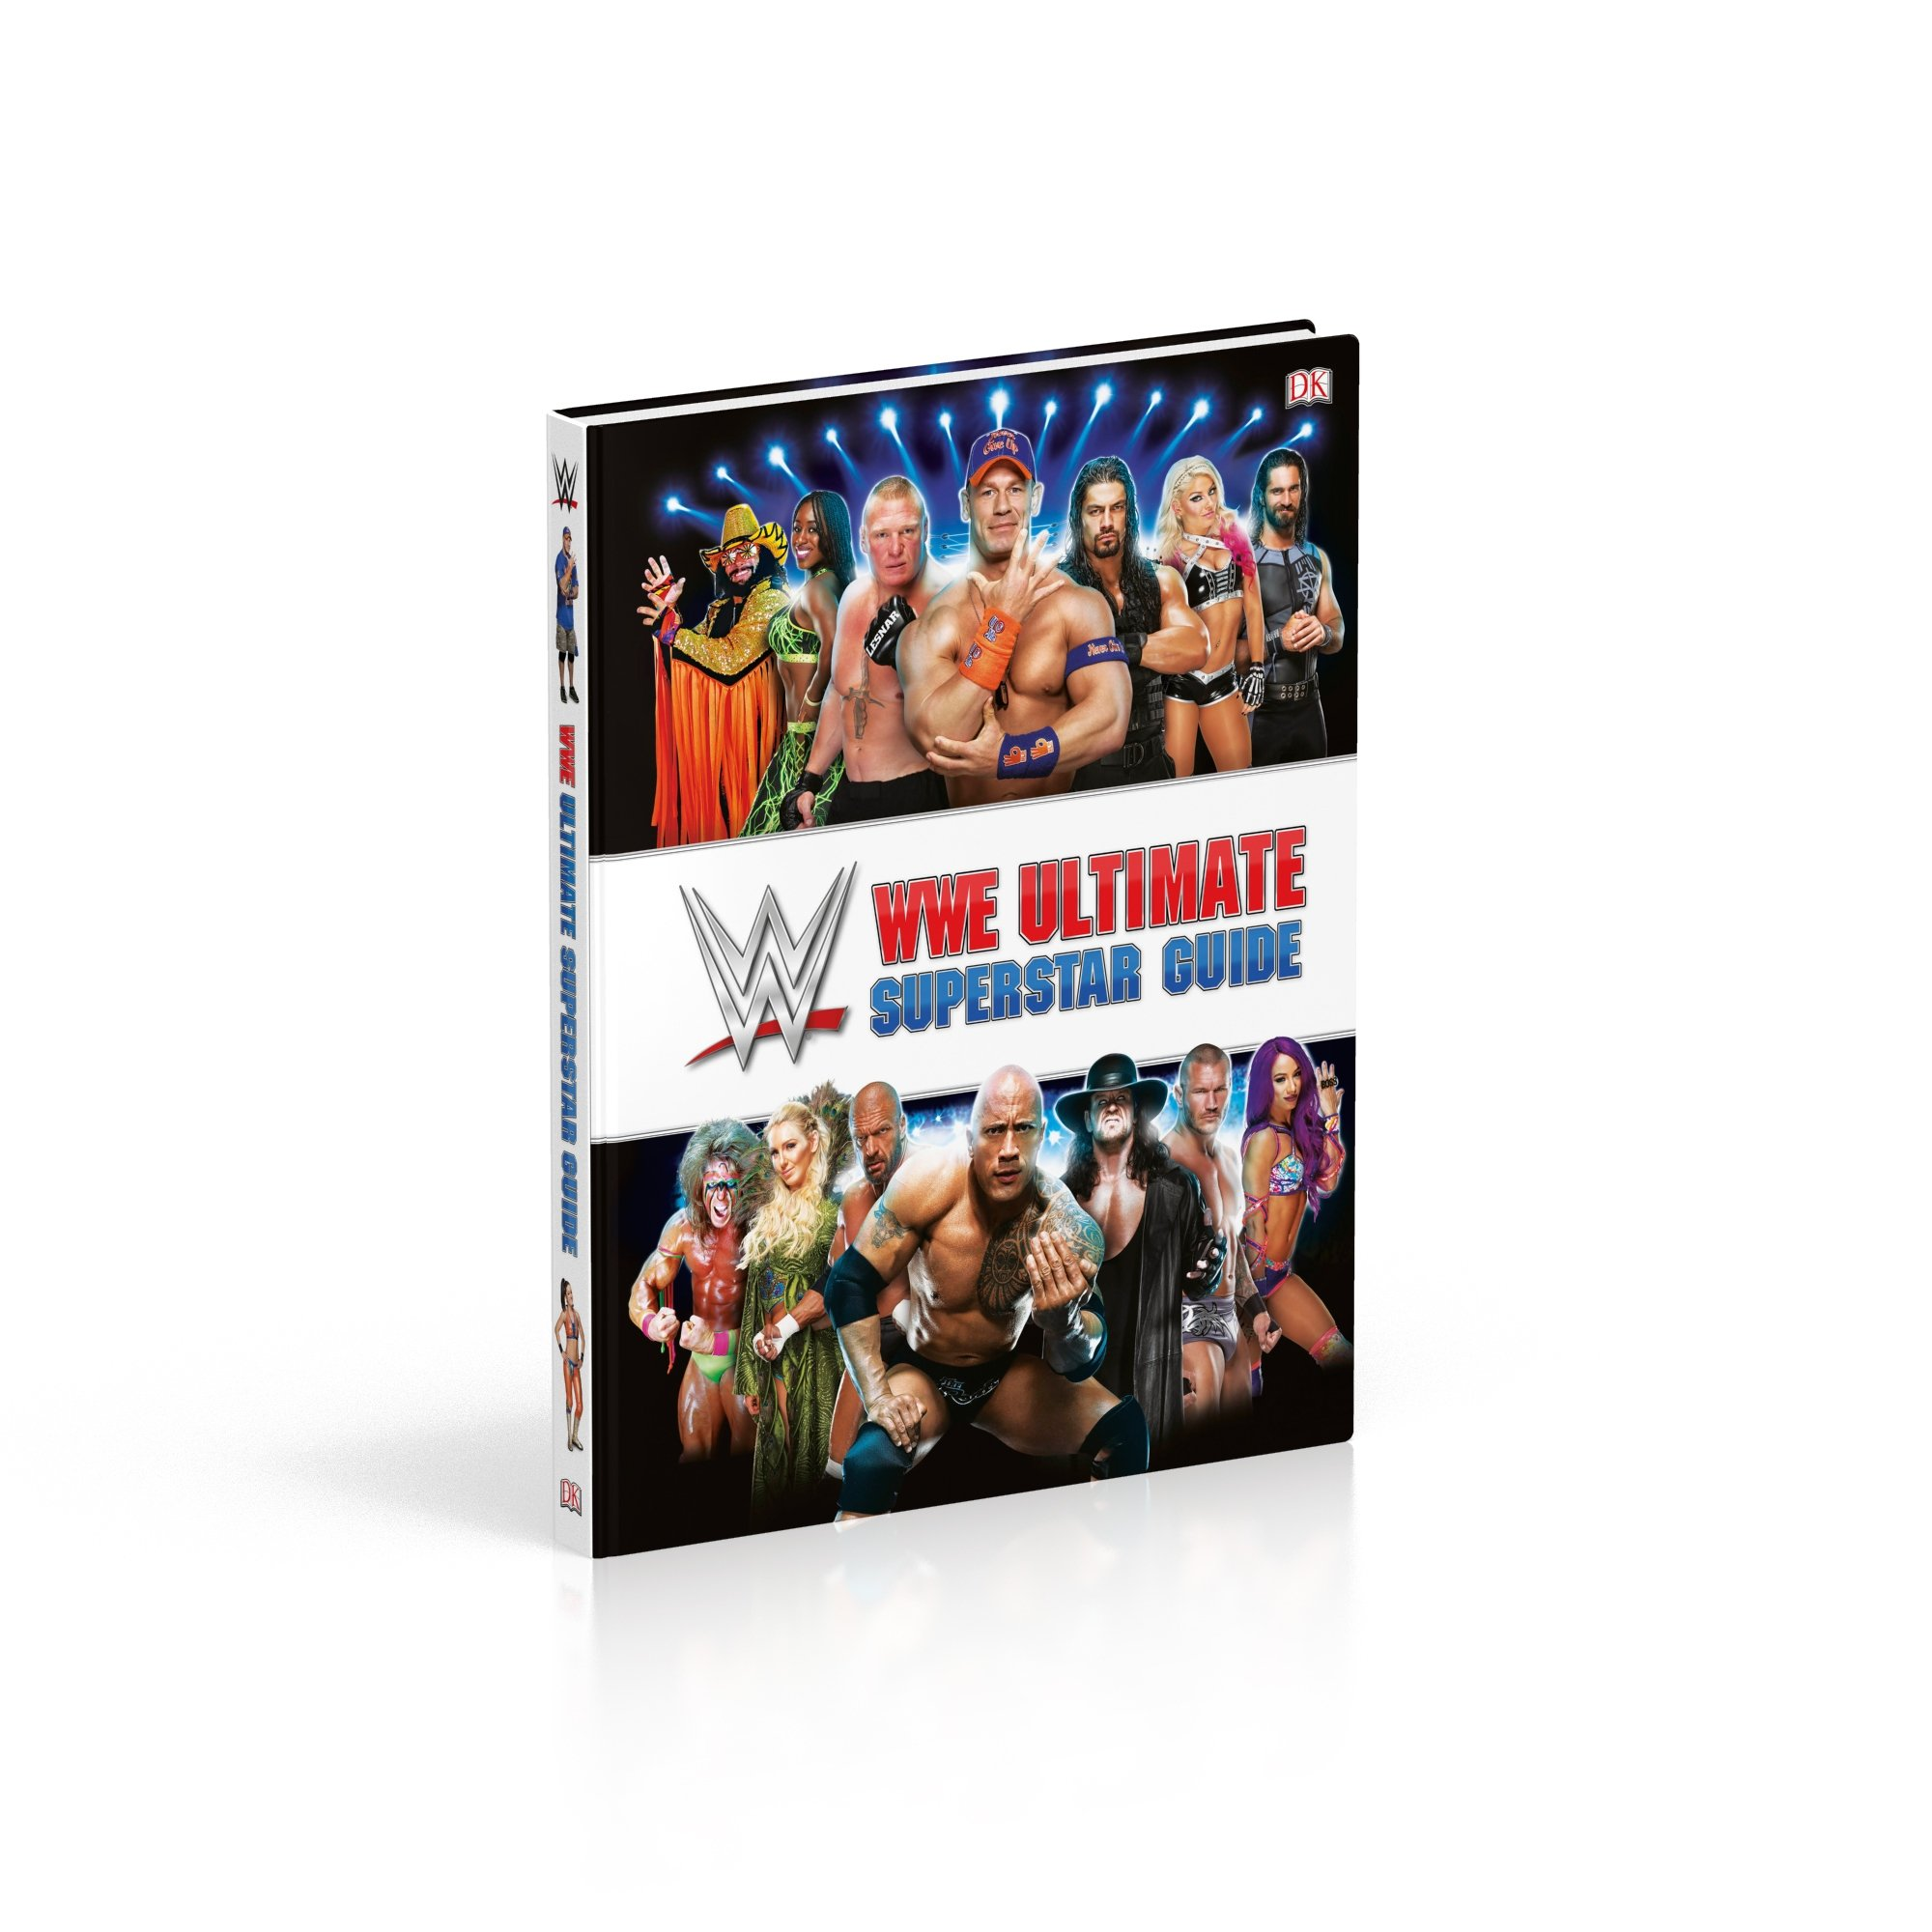 Wwe Ultimate Superstar Guide, 2nd Edition: Amazon.es: Jake ...